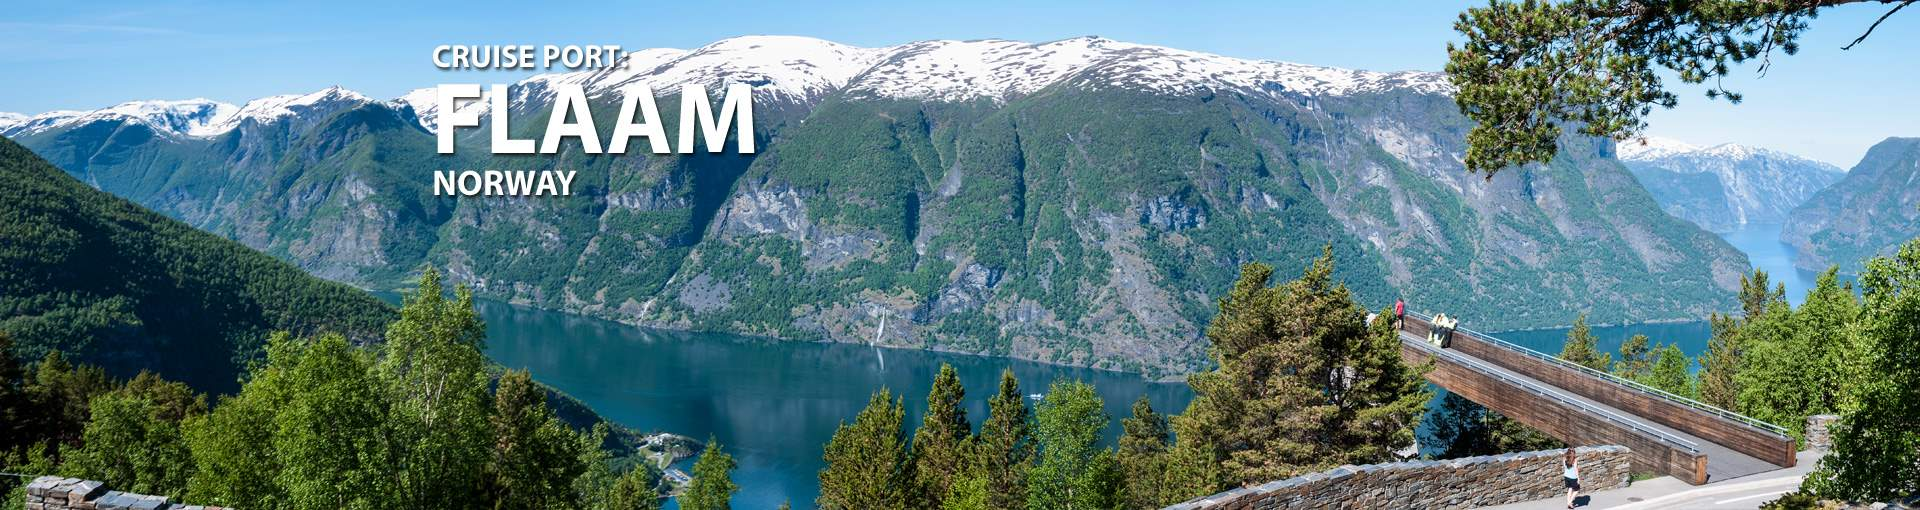 Cruises to Flaam, Norway